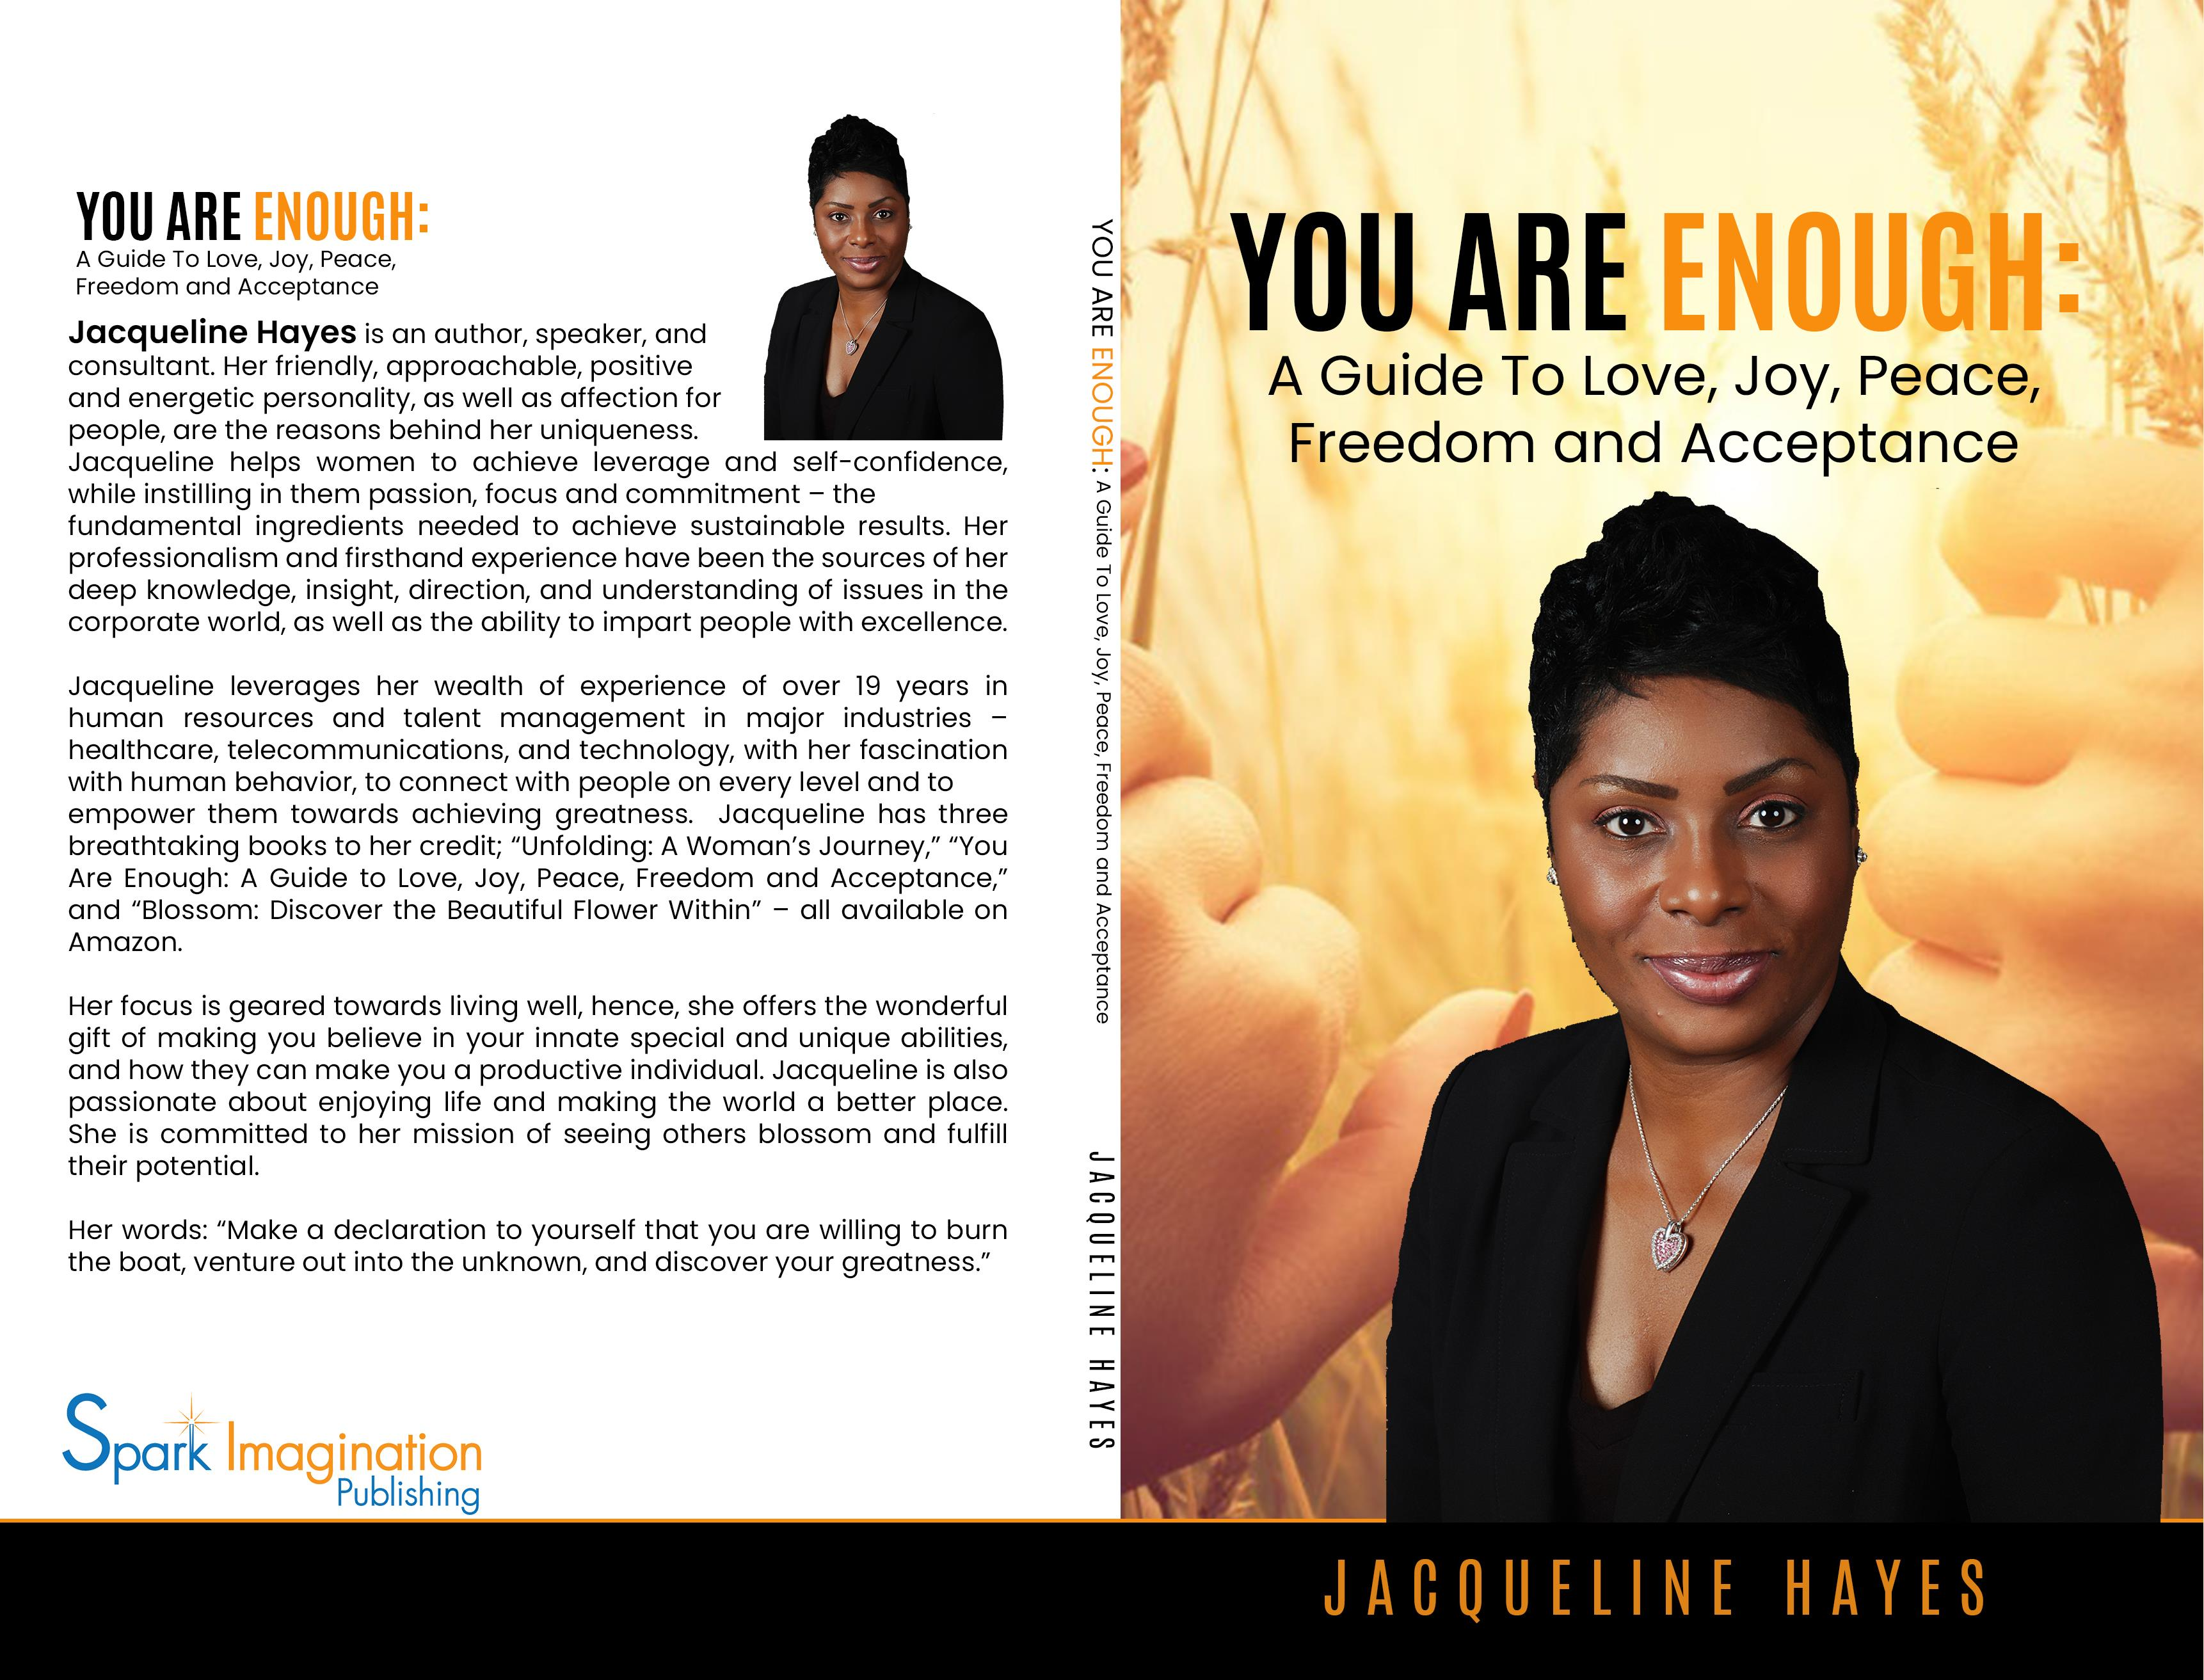 You Are Enough: A Guide to Love, Joy, Peace, Freedom and Acceptance